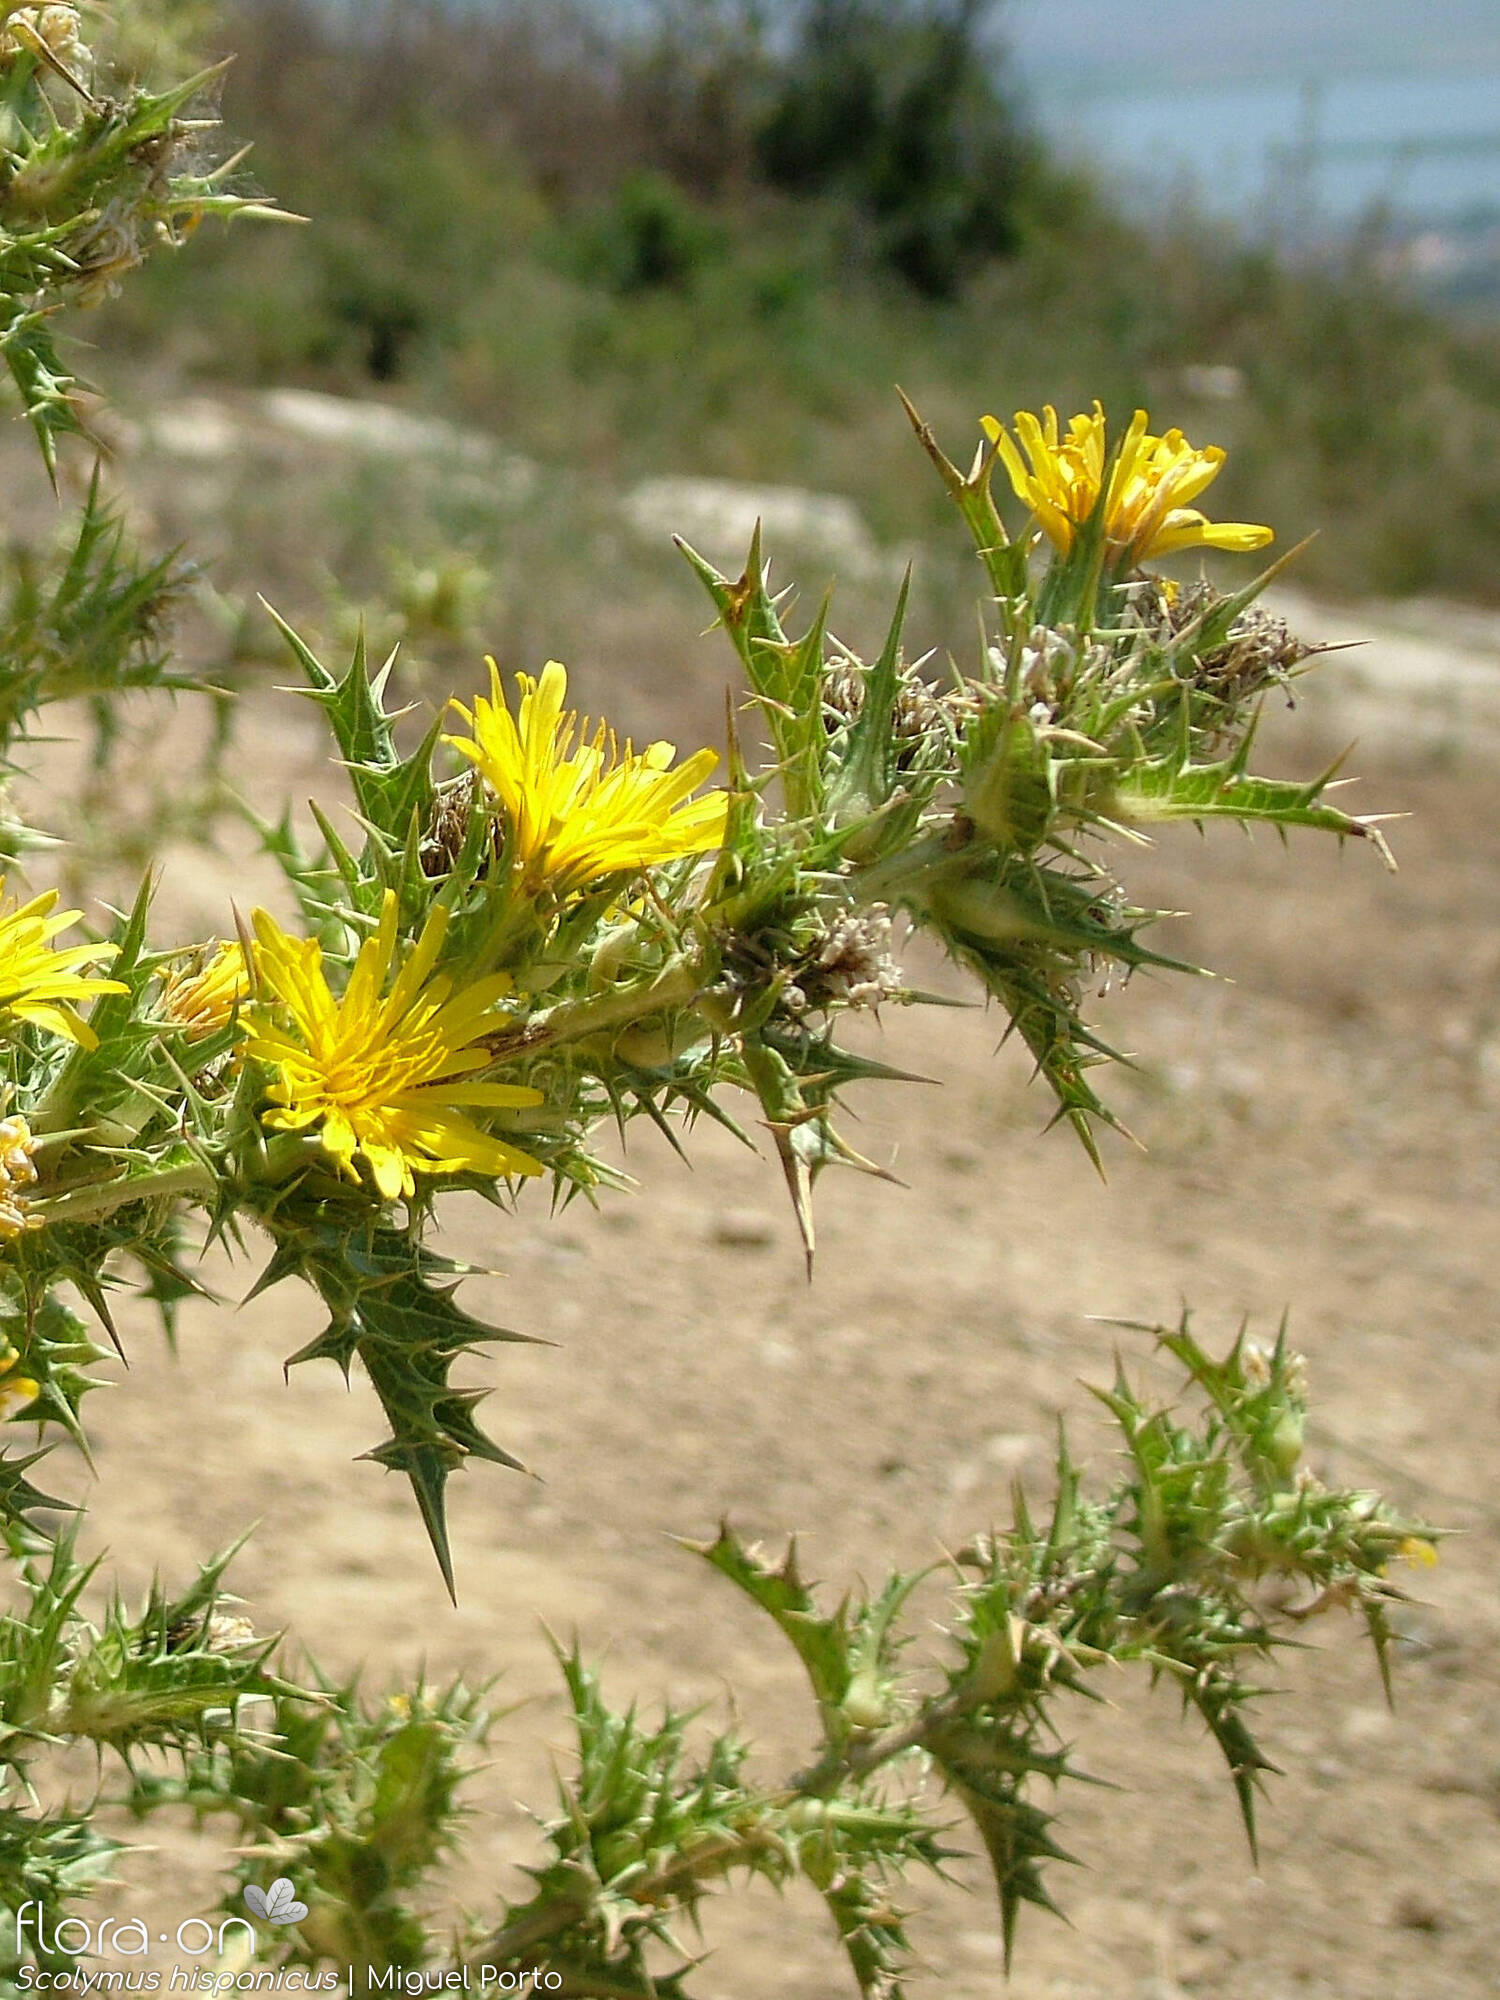 Scolymus hispanicus - Flor (geral) | Miguel Porto; CC BY-NC 4.0